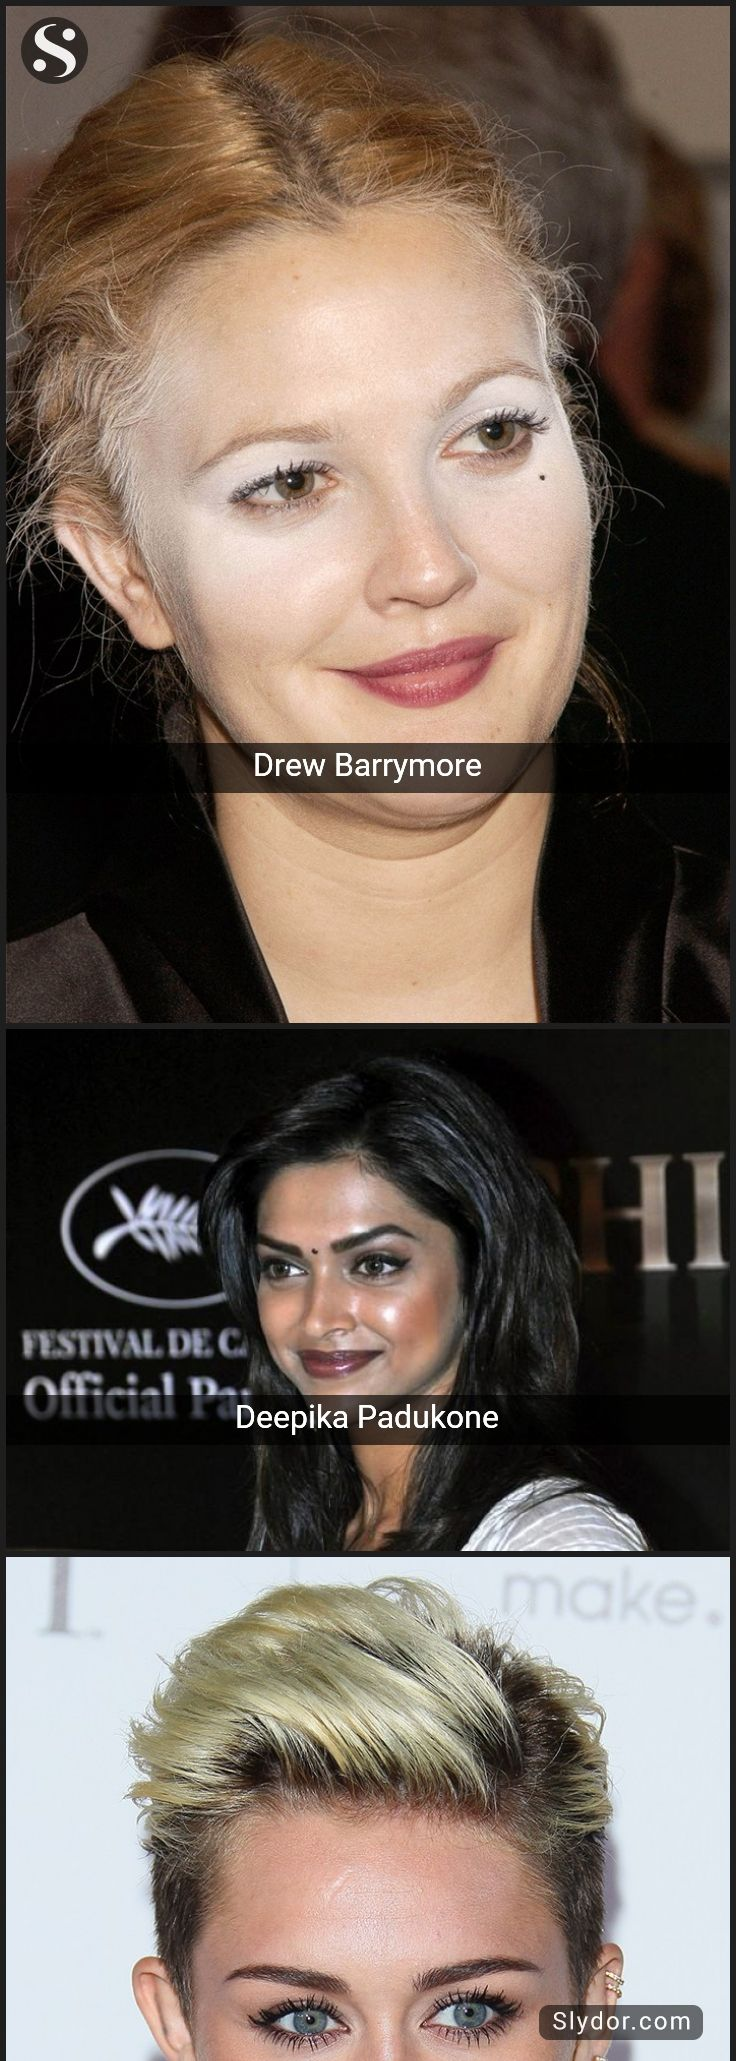 Makeup Gone Wrong Can Be One Of The Biggest Disasters For Any Celebrity.  Here,